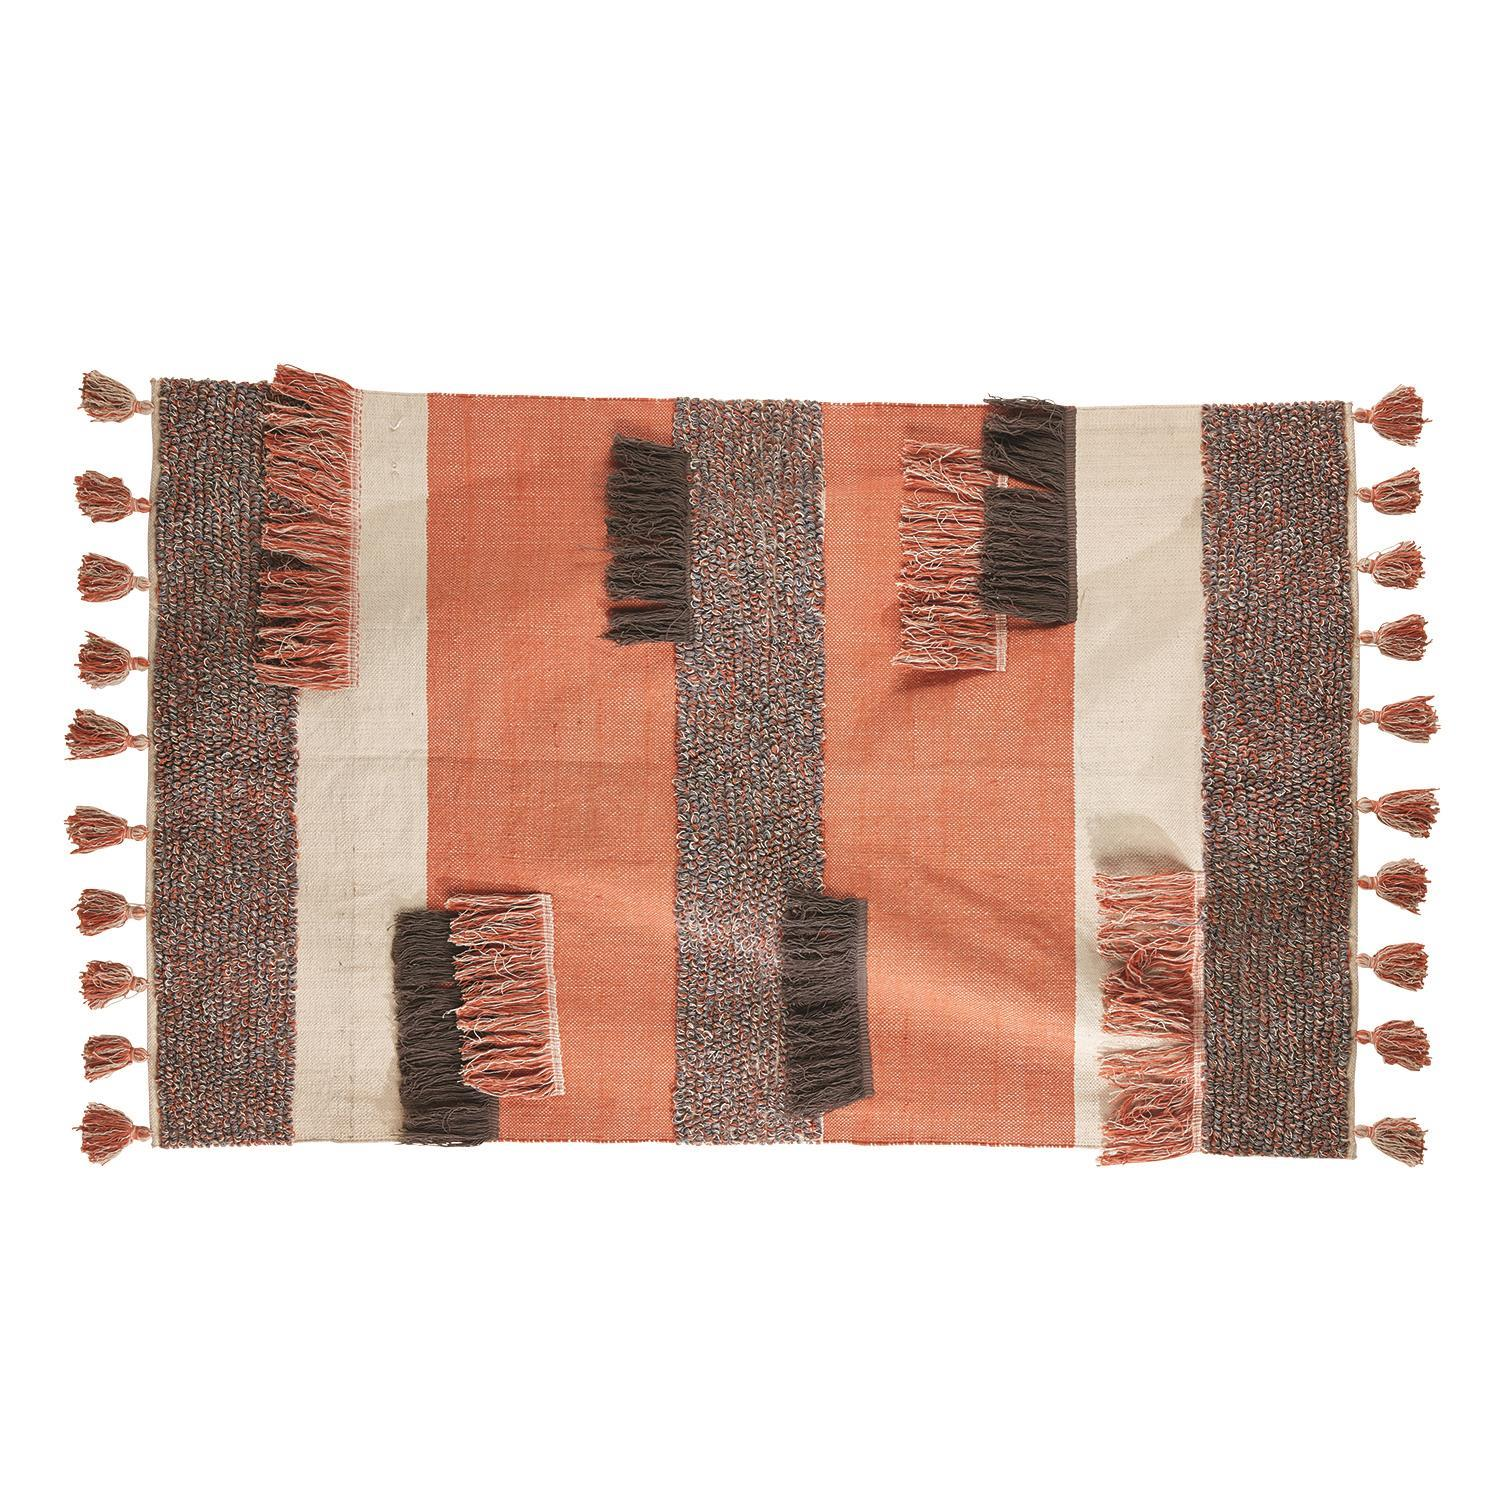 Topanga Woven Rug with Fringe and Tallels on white background